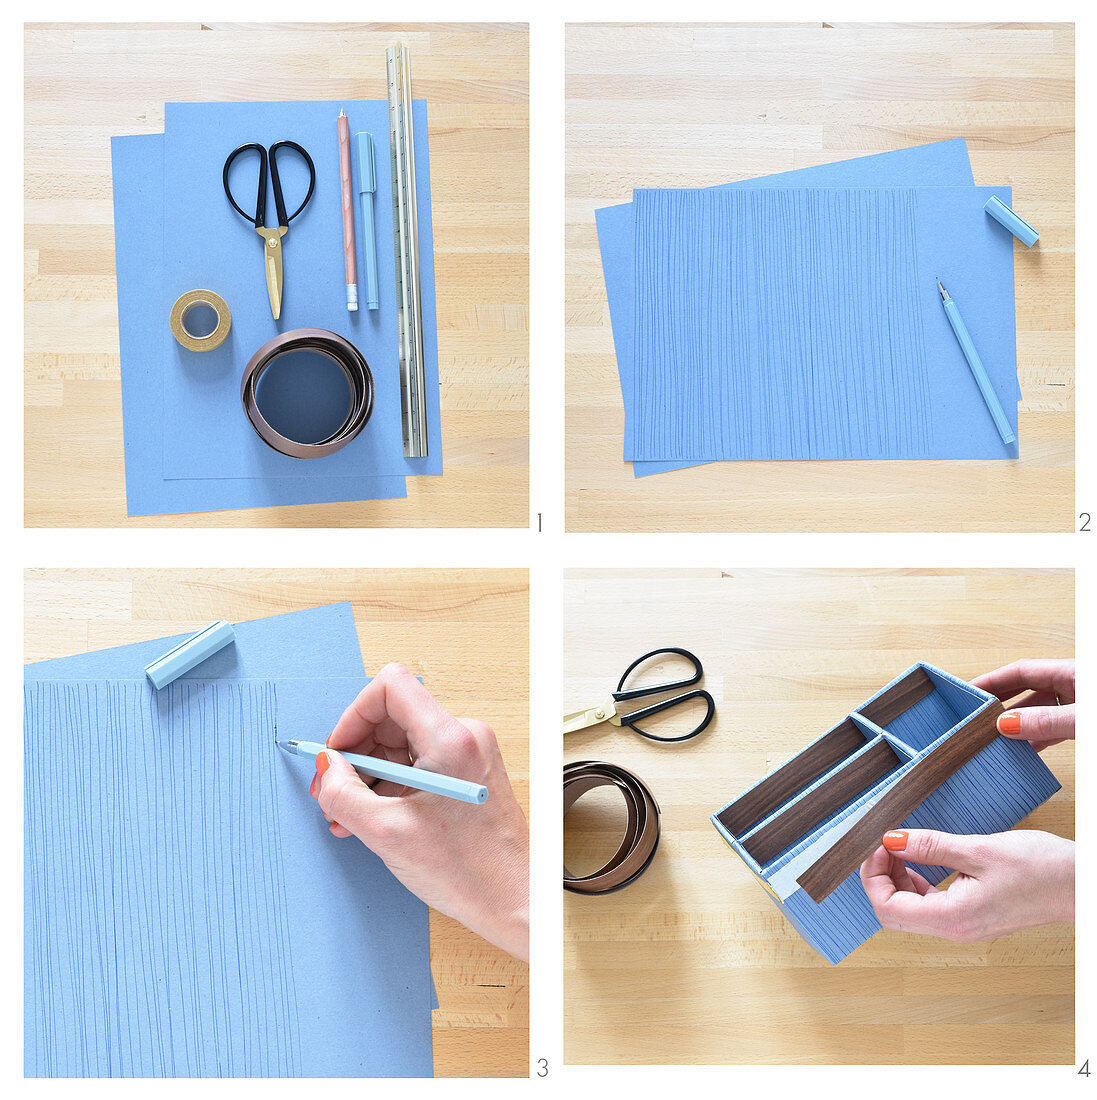 Instructions for making a desk organiser decorated with edging strip